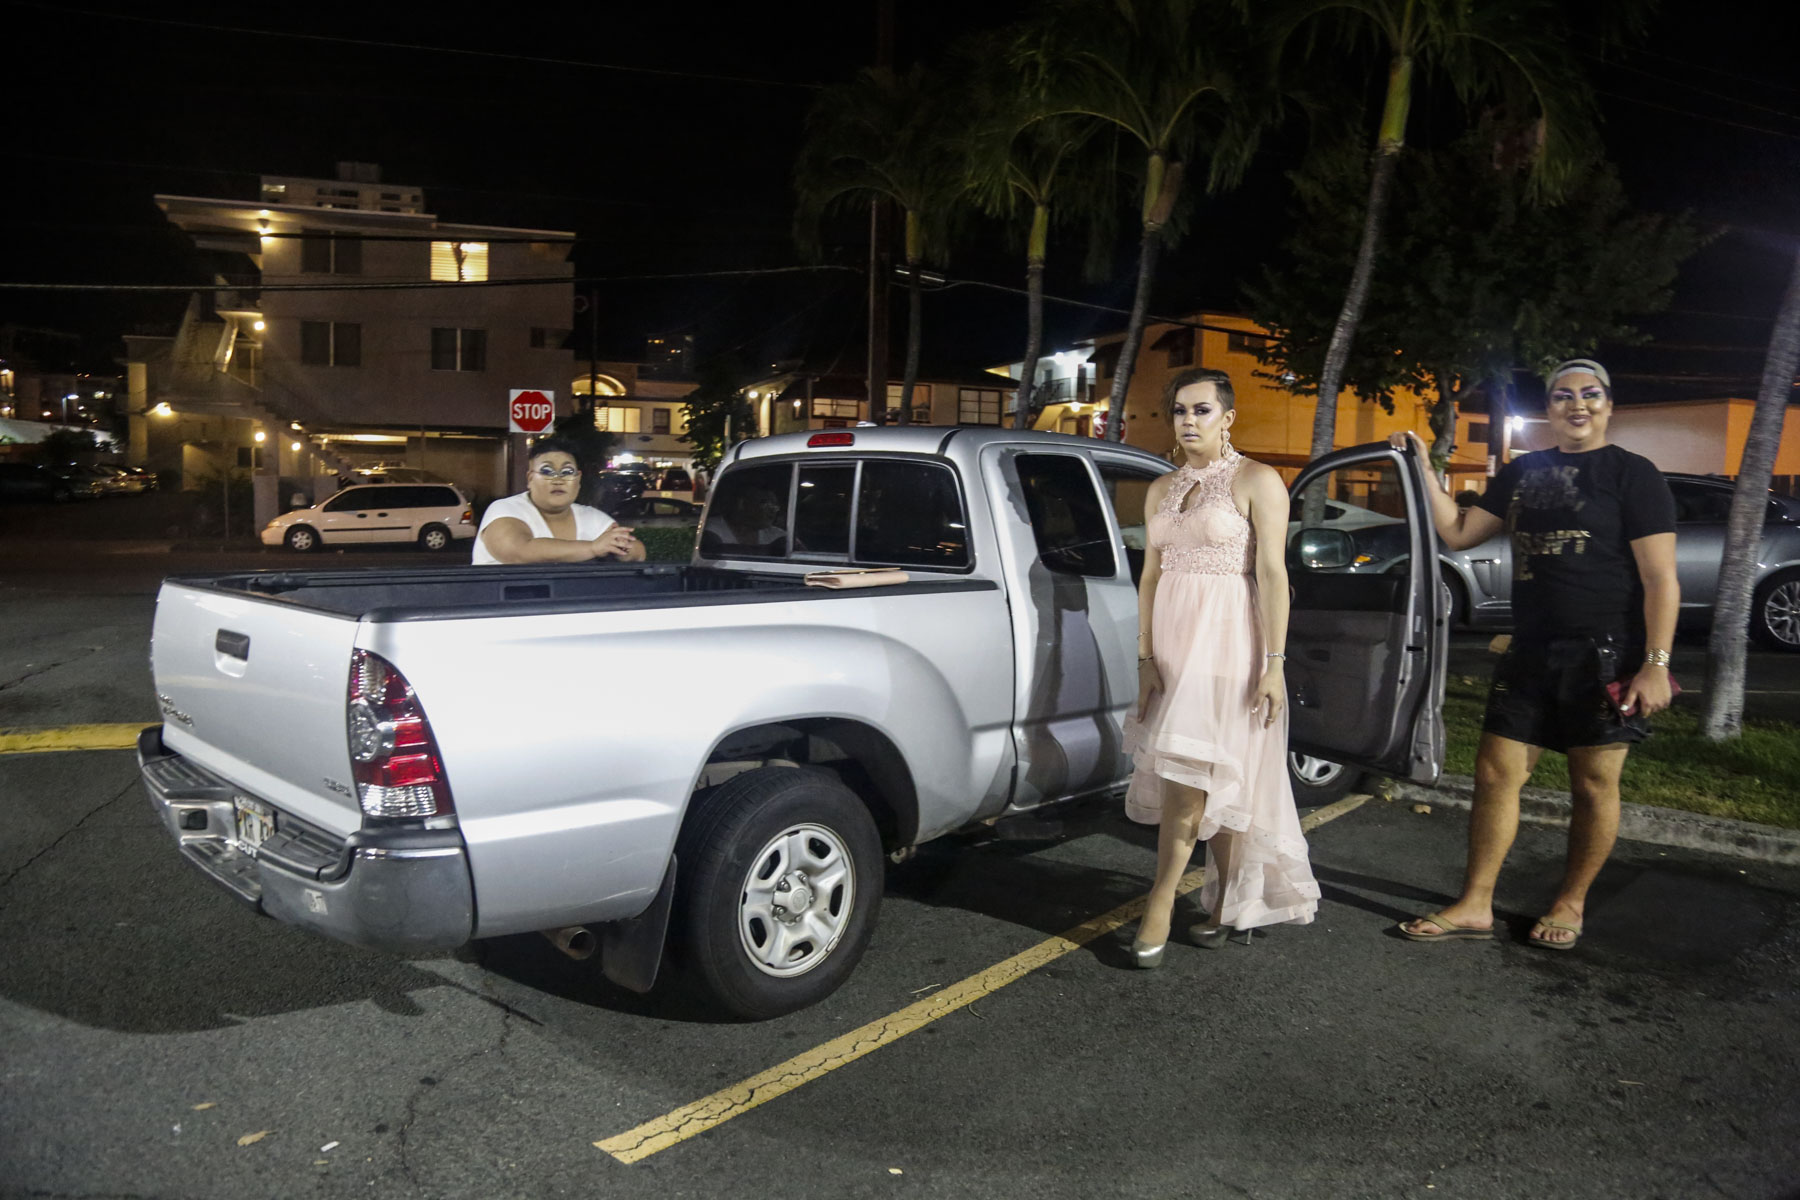 (From left to right) Water Melone, Aria Del Rey and Apple Aday pose for a portrait in front of Water Melone's truck at Zippy's in Makiki, HI after Drag Prom.